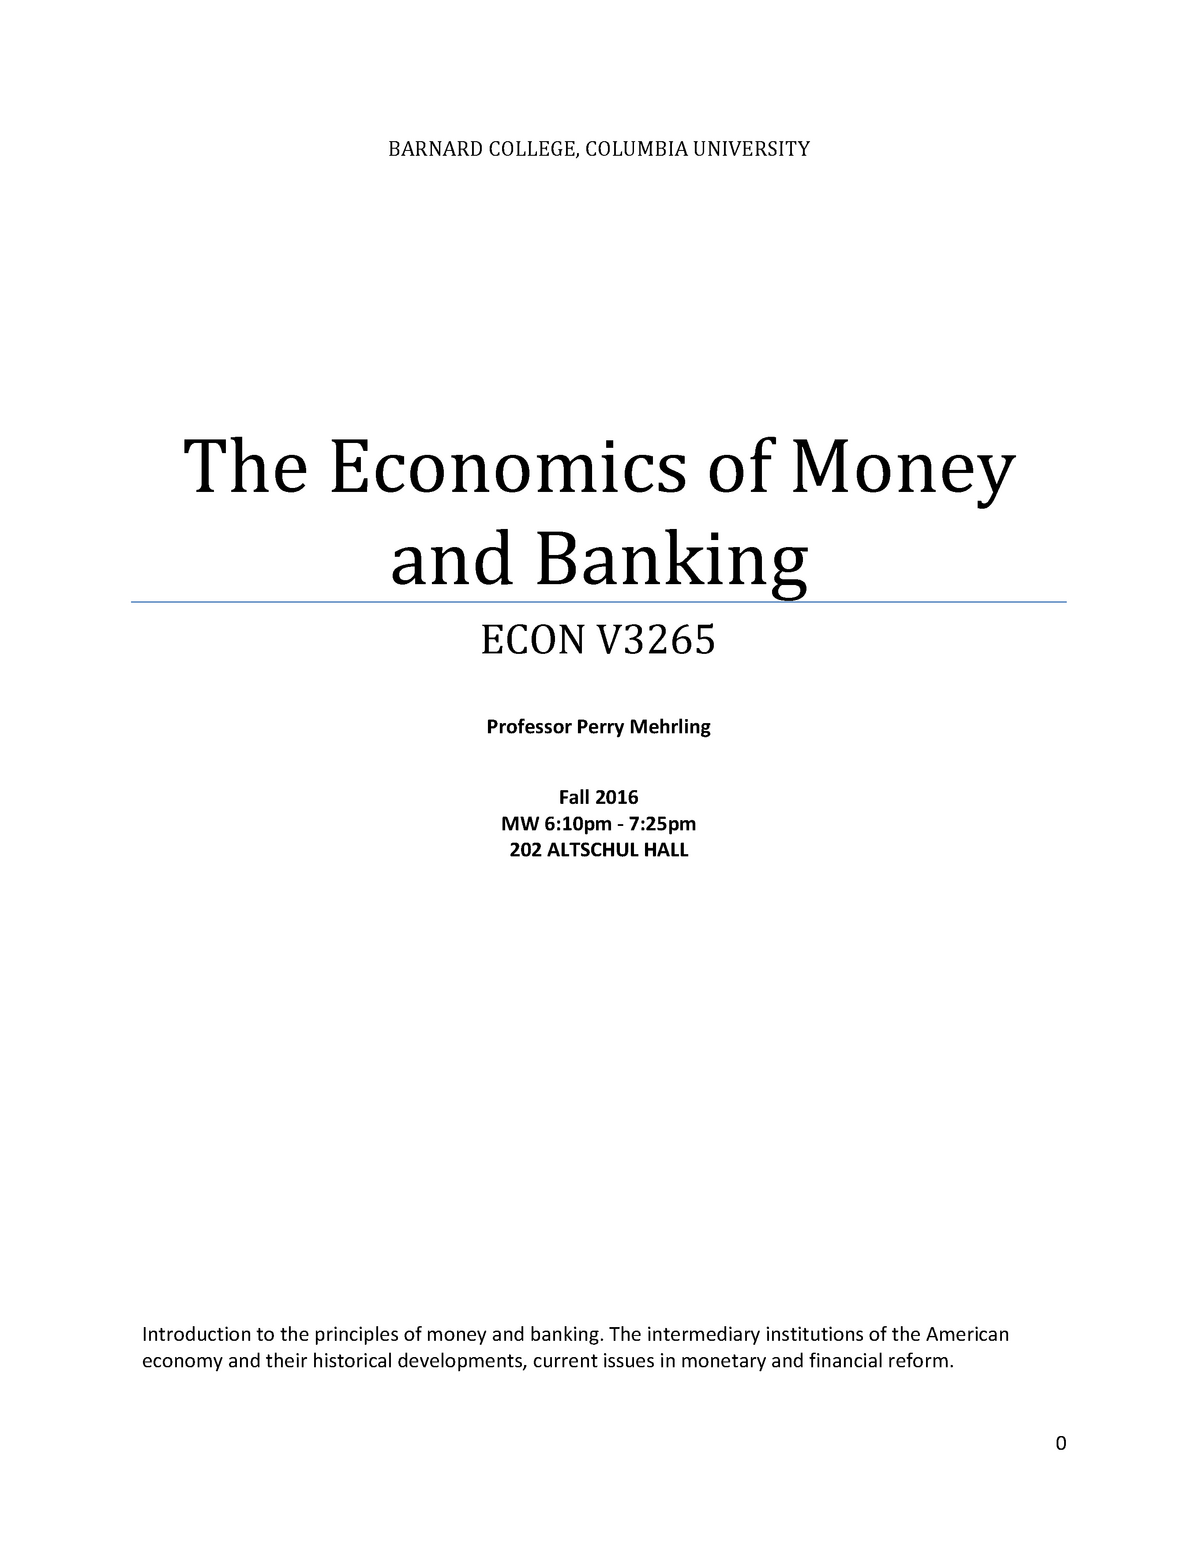 Economics of Money and Banking Lecture Notes - ECON UN3265: Money